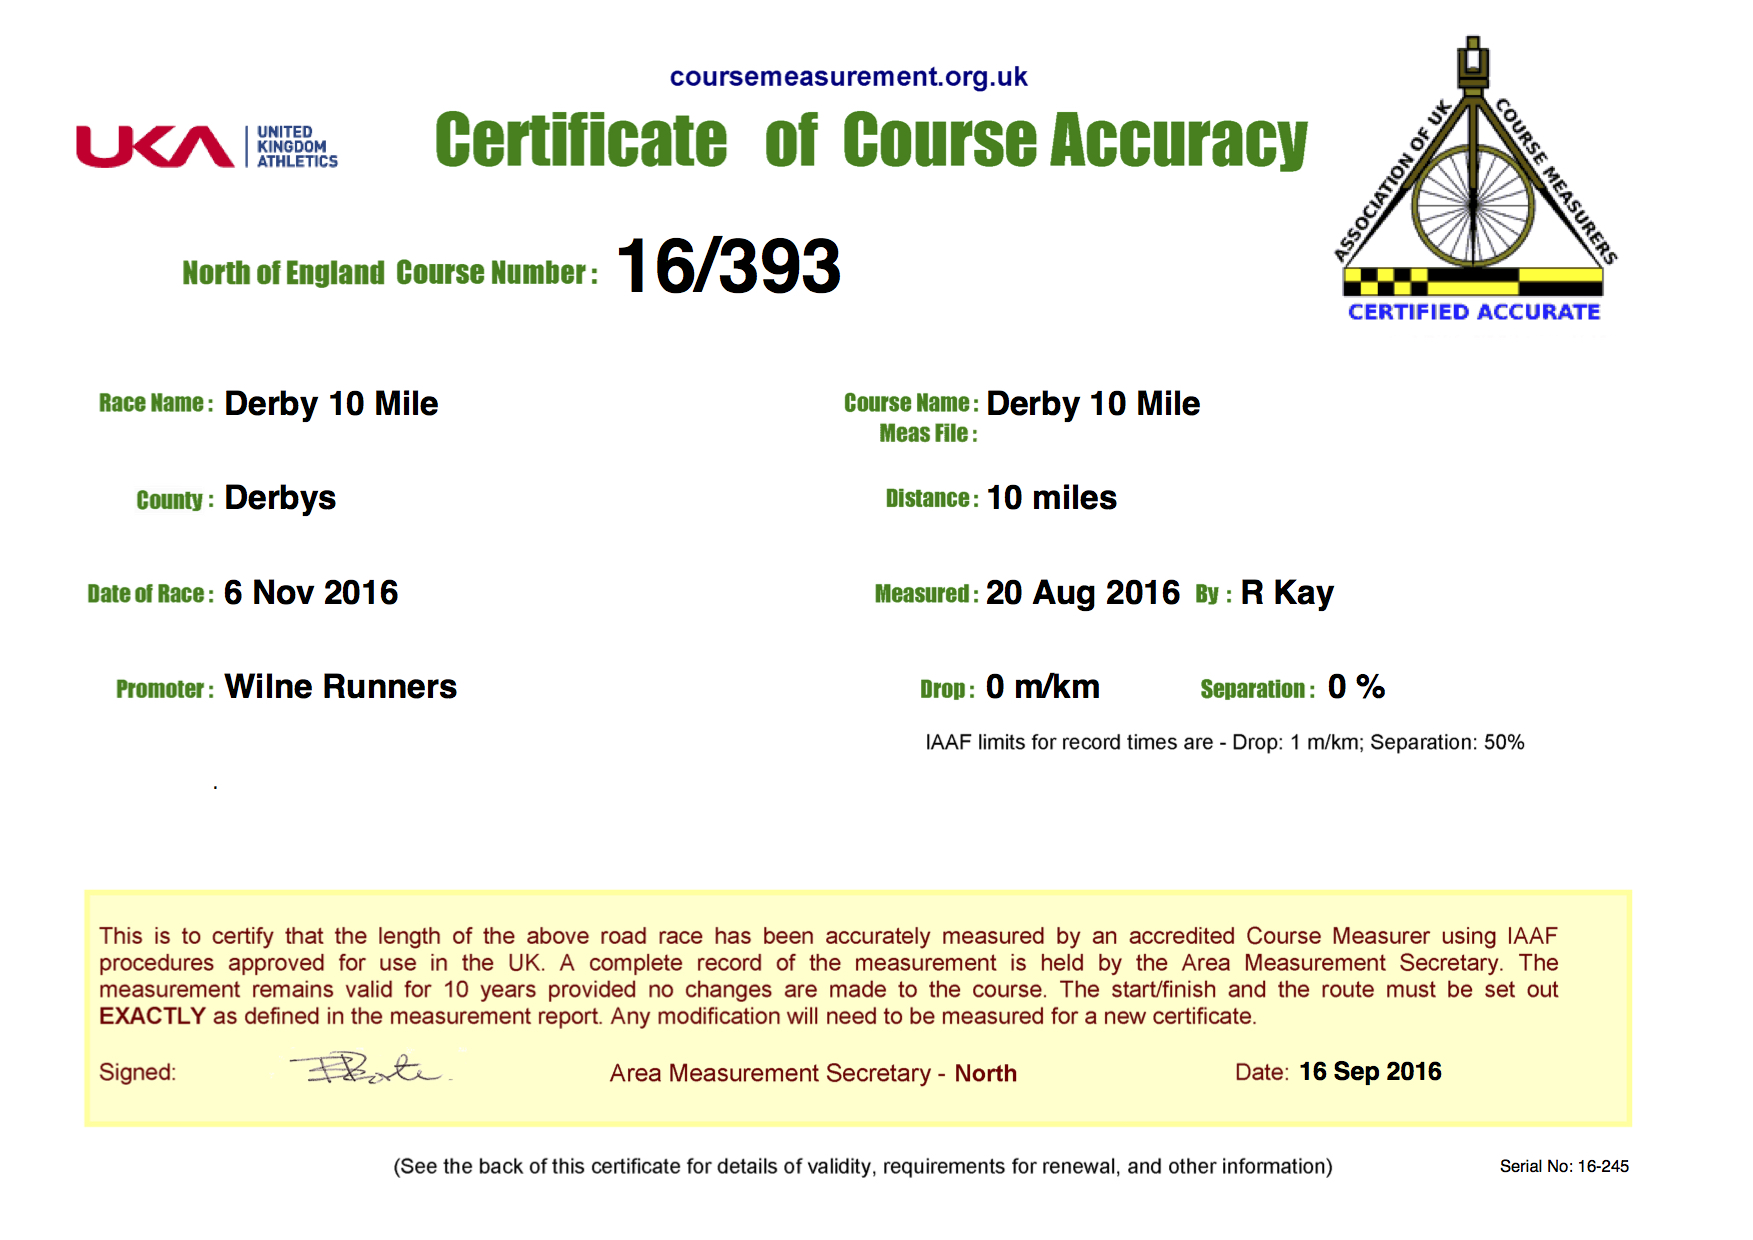 derby-10-mile-2016-course-measurement-certificate